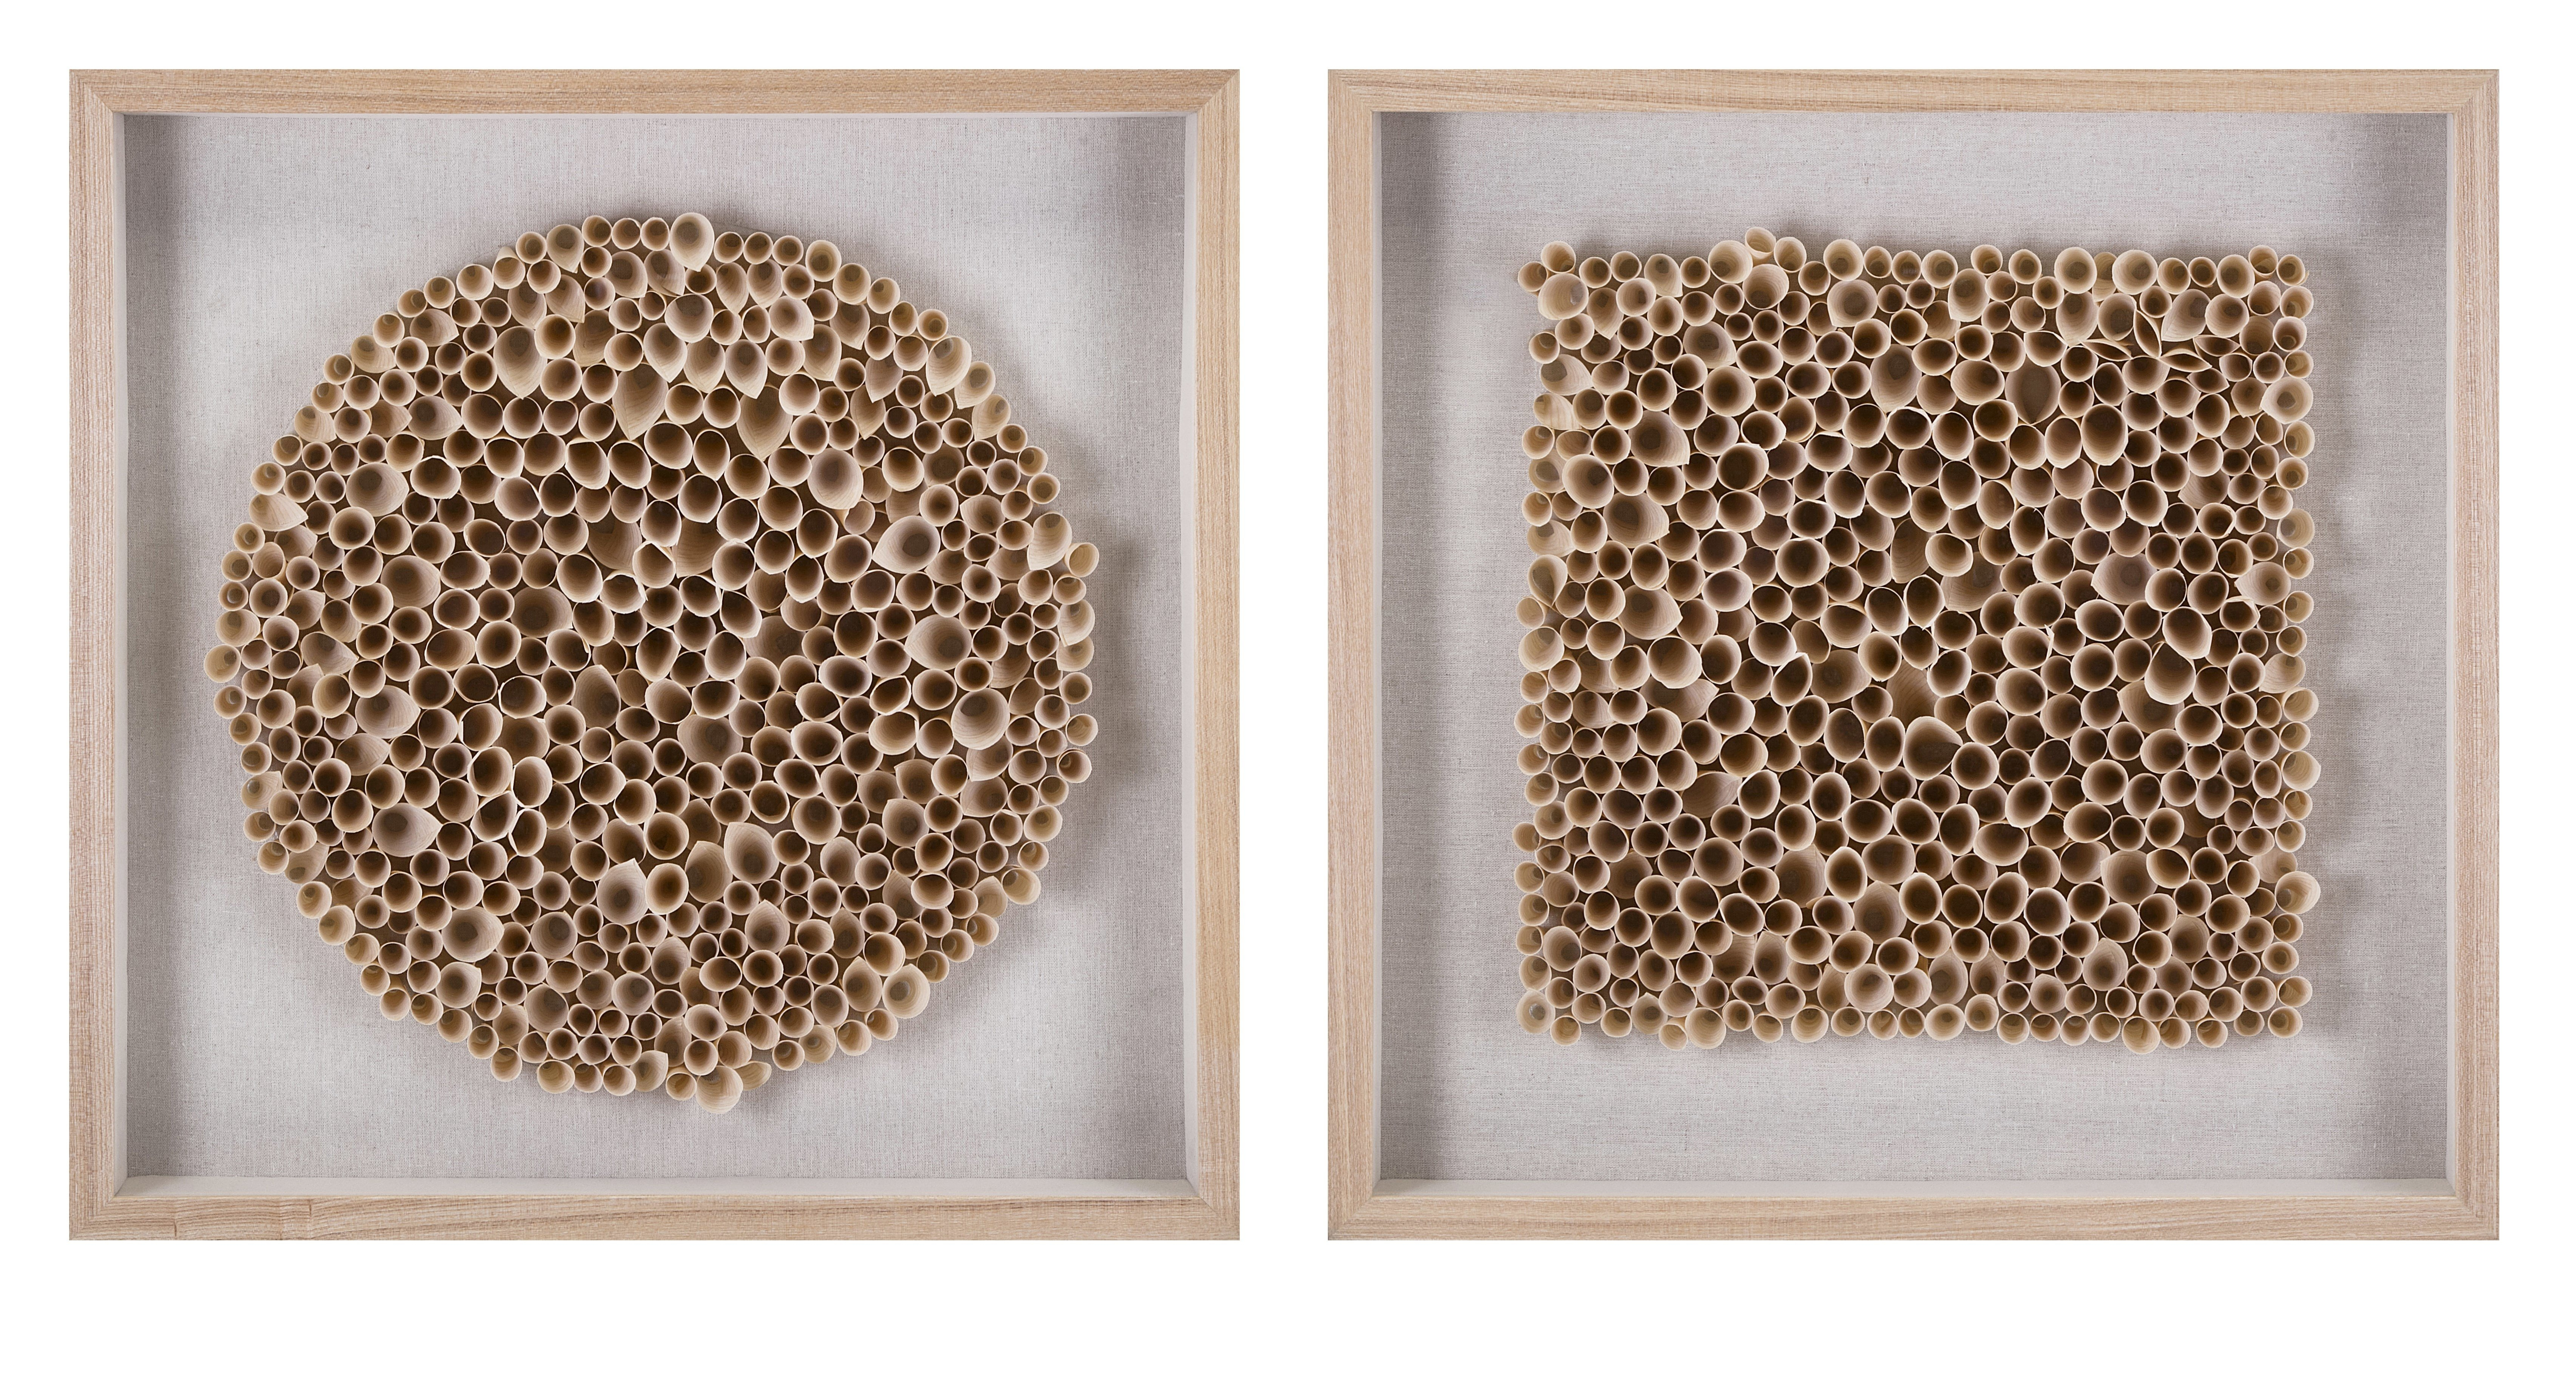 2 Piece Wall Decor Set | Wayfair Throughout 2 Piece Starburst Wall Decor Sets (Gallery 3 of 30)